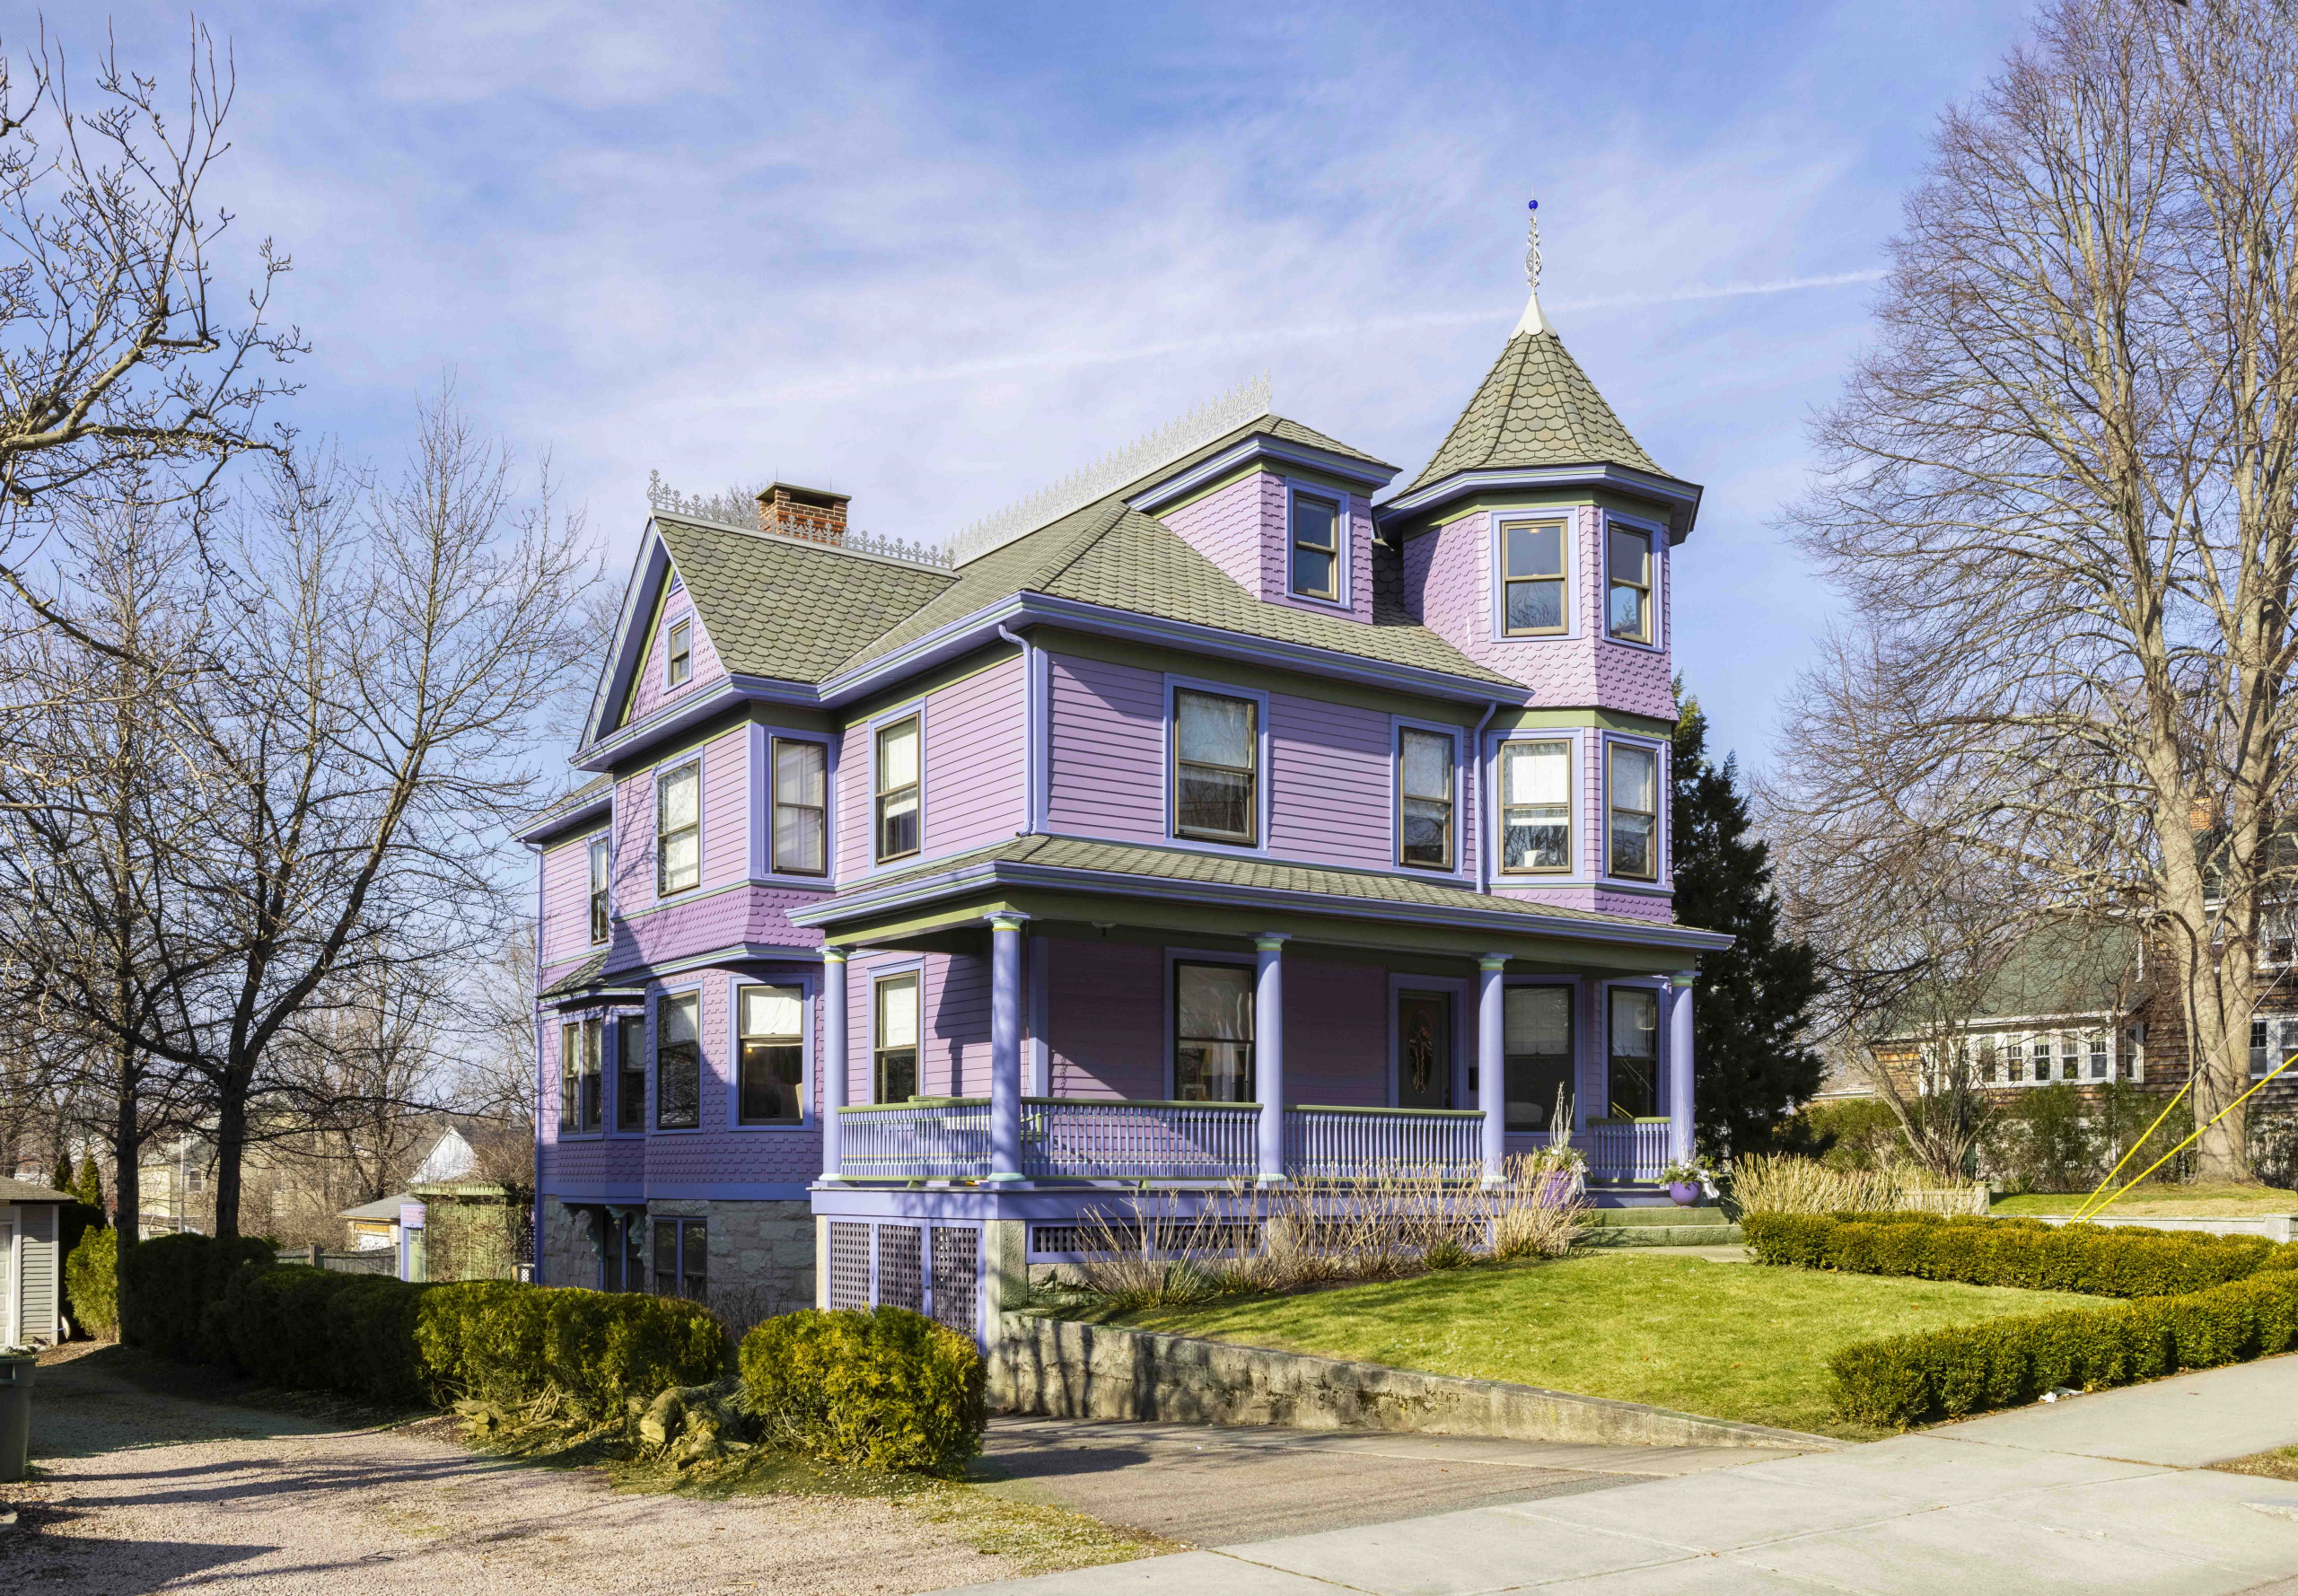 """SALE OF WESTERLY'S """"PURPLE HOUSE"""" MARKS HIGHEST NON-WATERFRONT HOME SALE IN DOWNTOWN WESTERLY HISTORY*"""